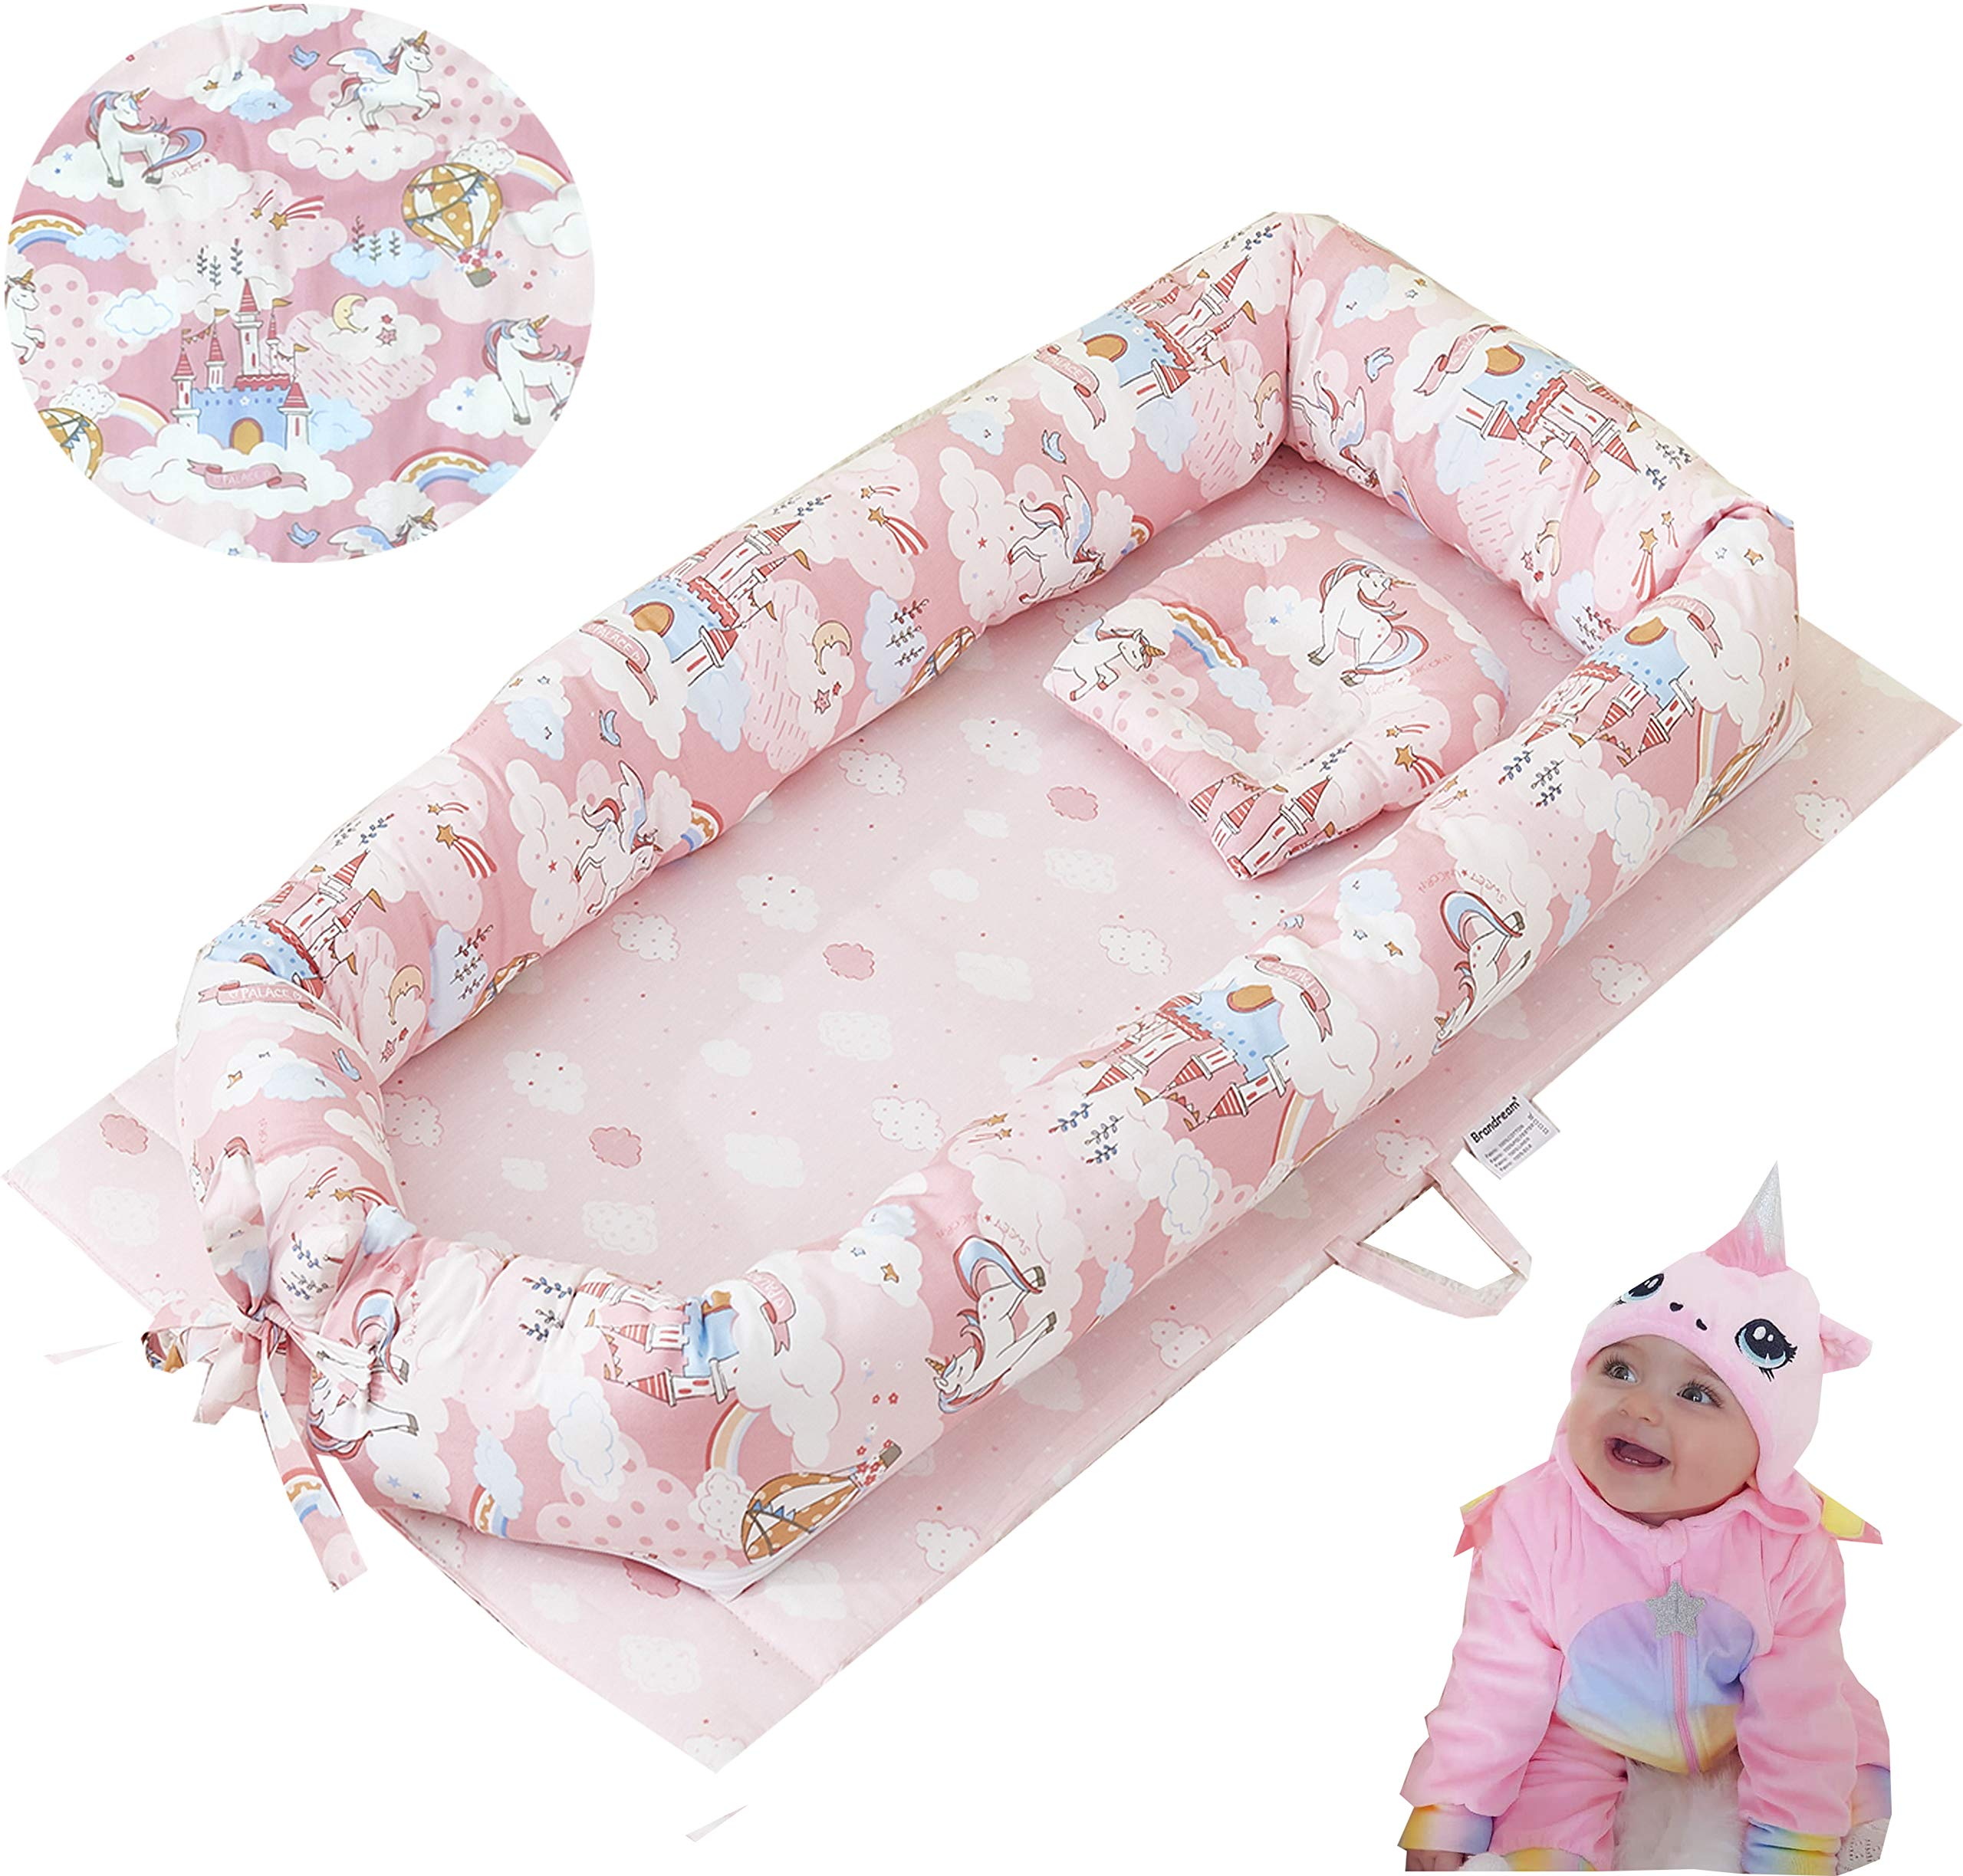 Abreeze Baby Lounger,Infant Lounger,Newborn Lounger Breathable,Hypoallergenic-Perfect for Co-Sleeping,Cotton Portable Travel Infant Bed,Crib,Bassinet,or Penguin Baby Nest